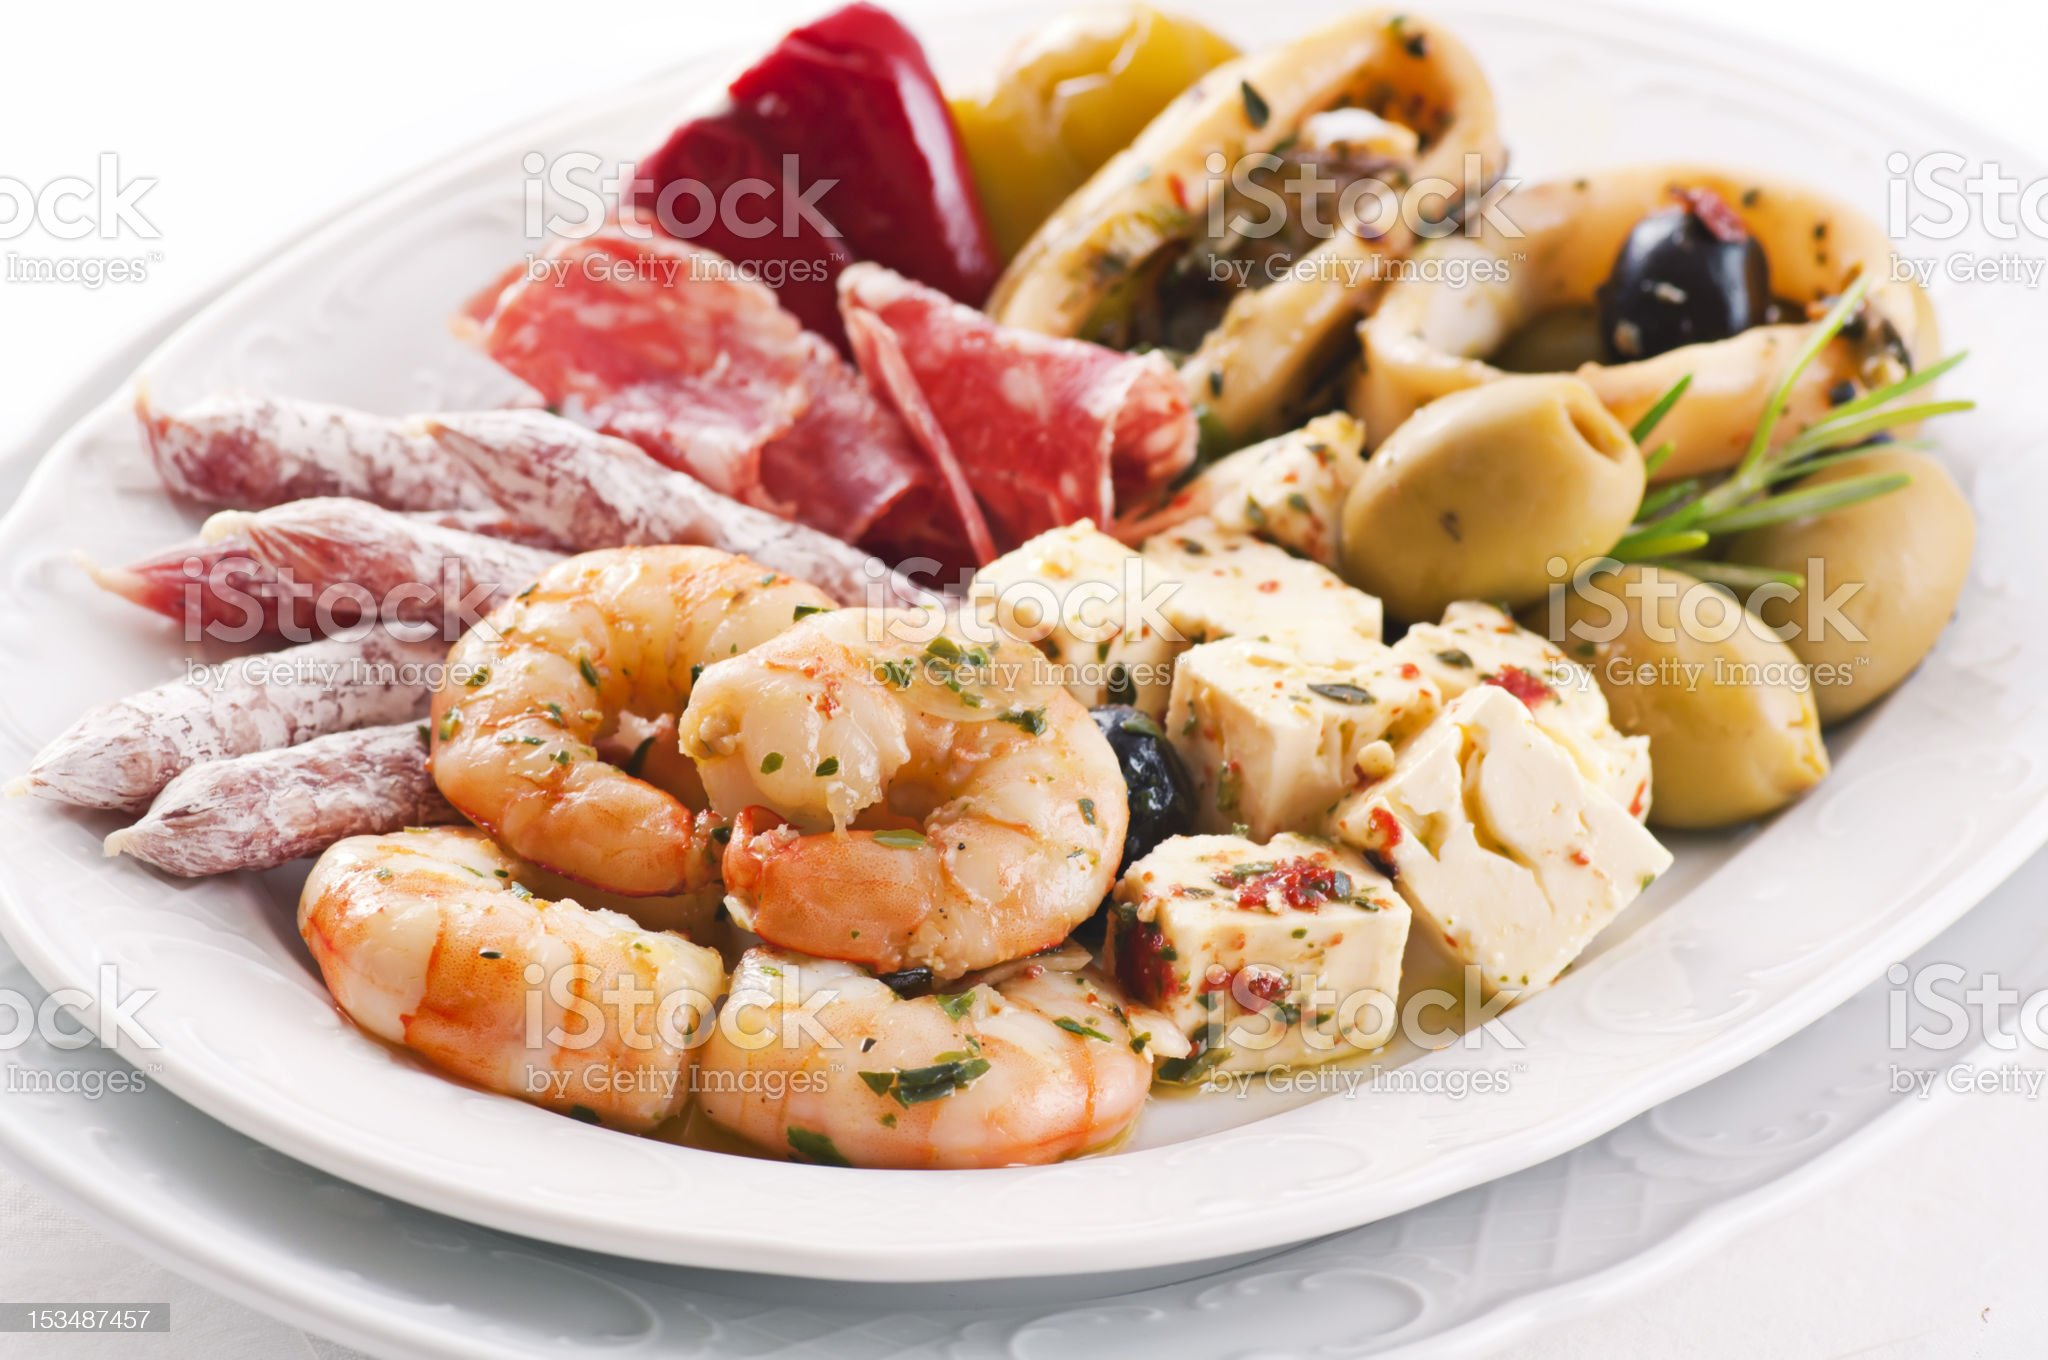 Tapas with Seafood and Sausages royalty-free stock photo